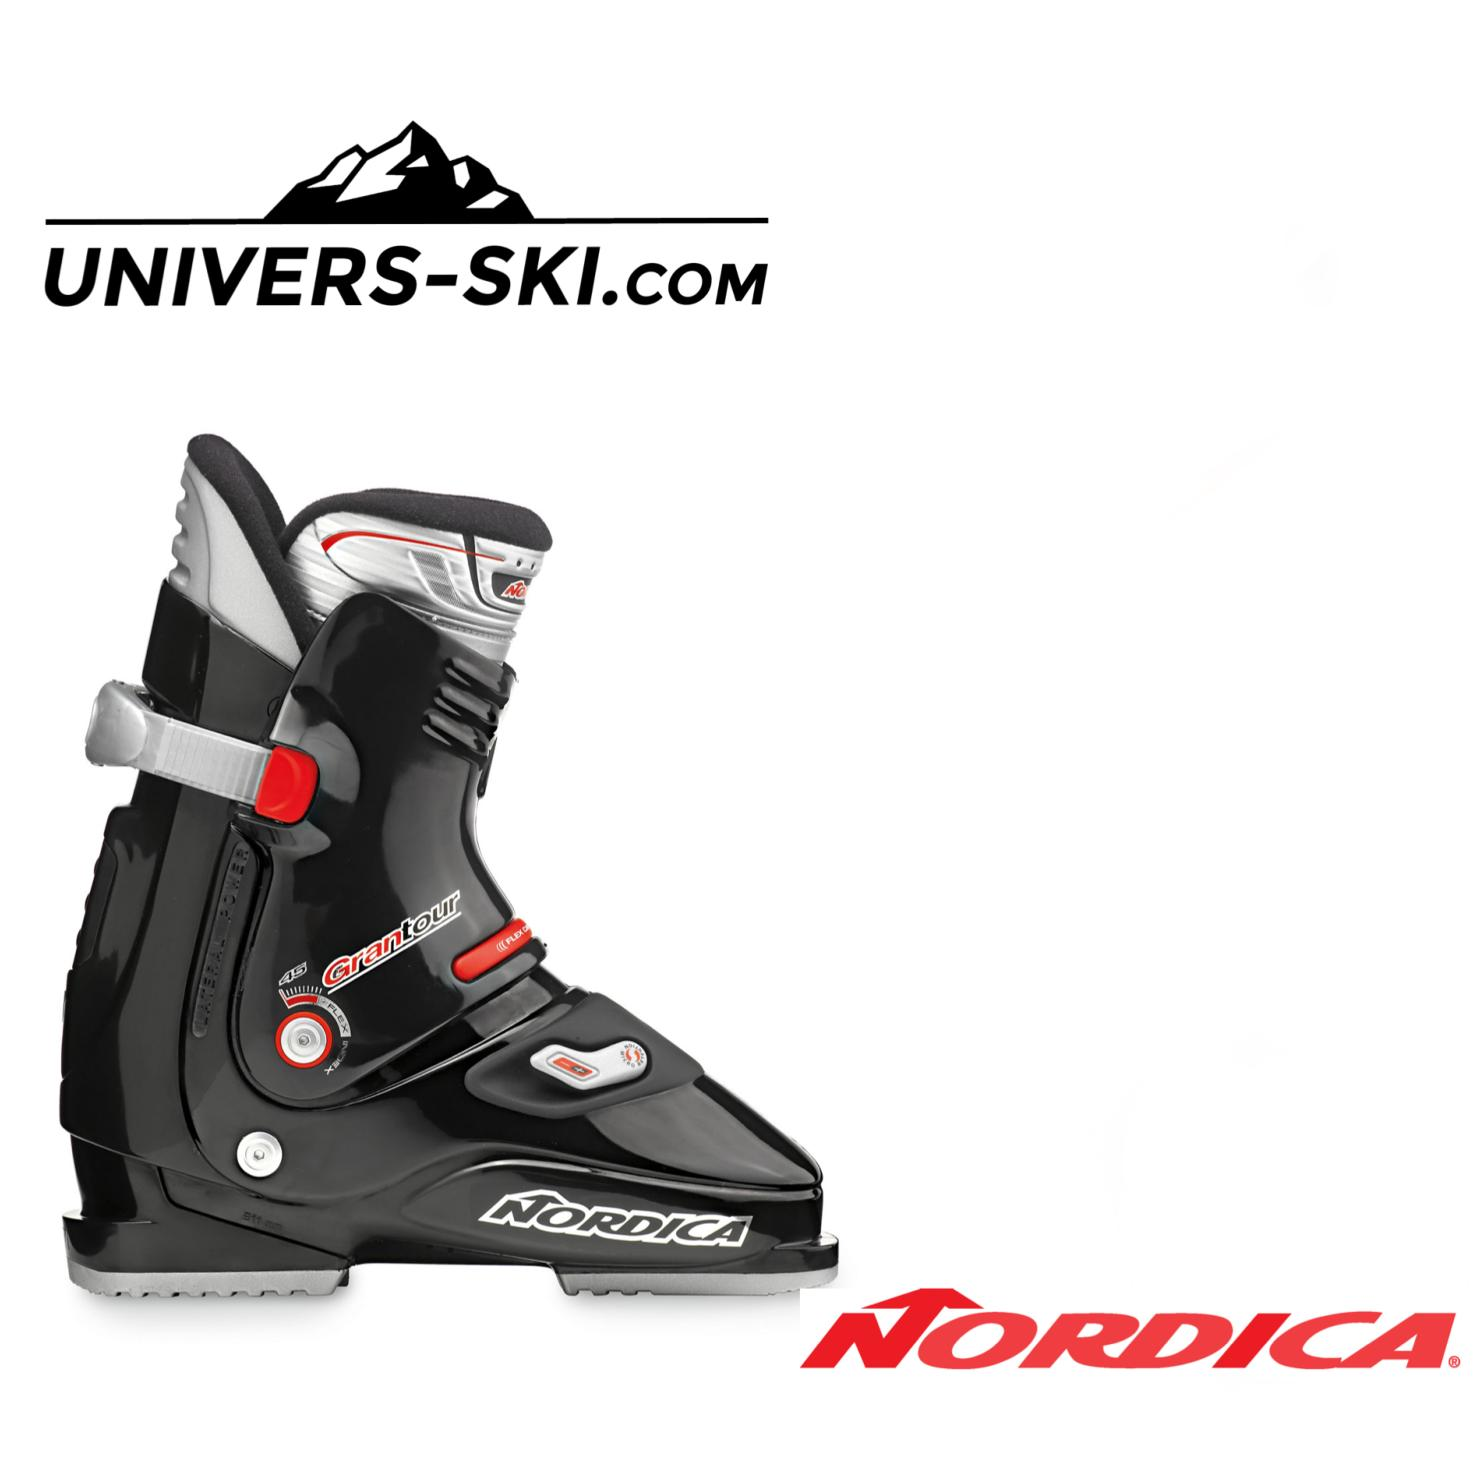 Nordica RTL de Tour ski Chaussures Gran 2020 gY7f6byv